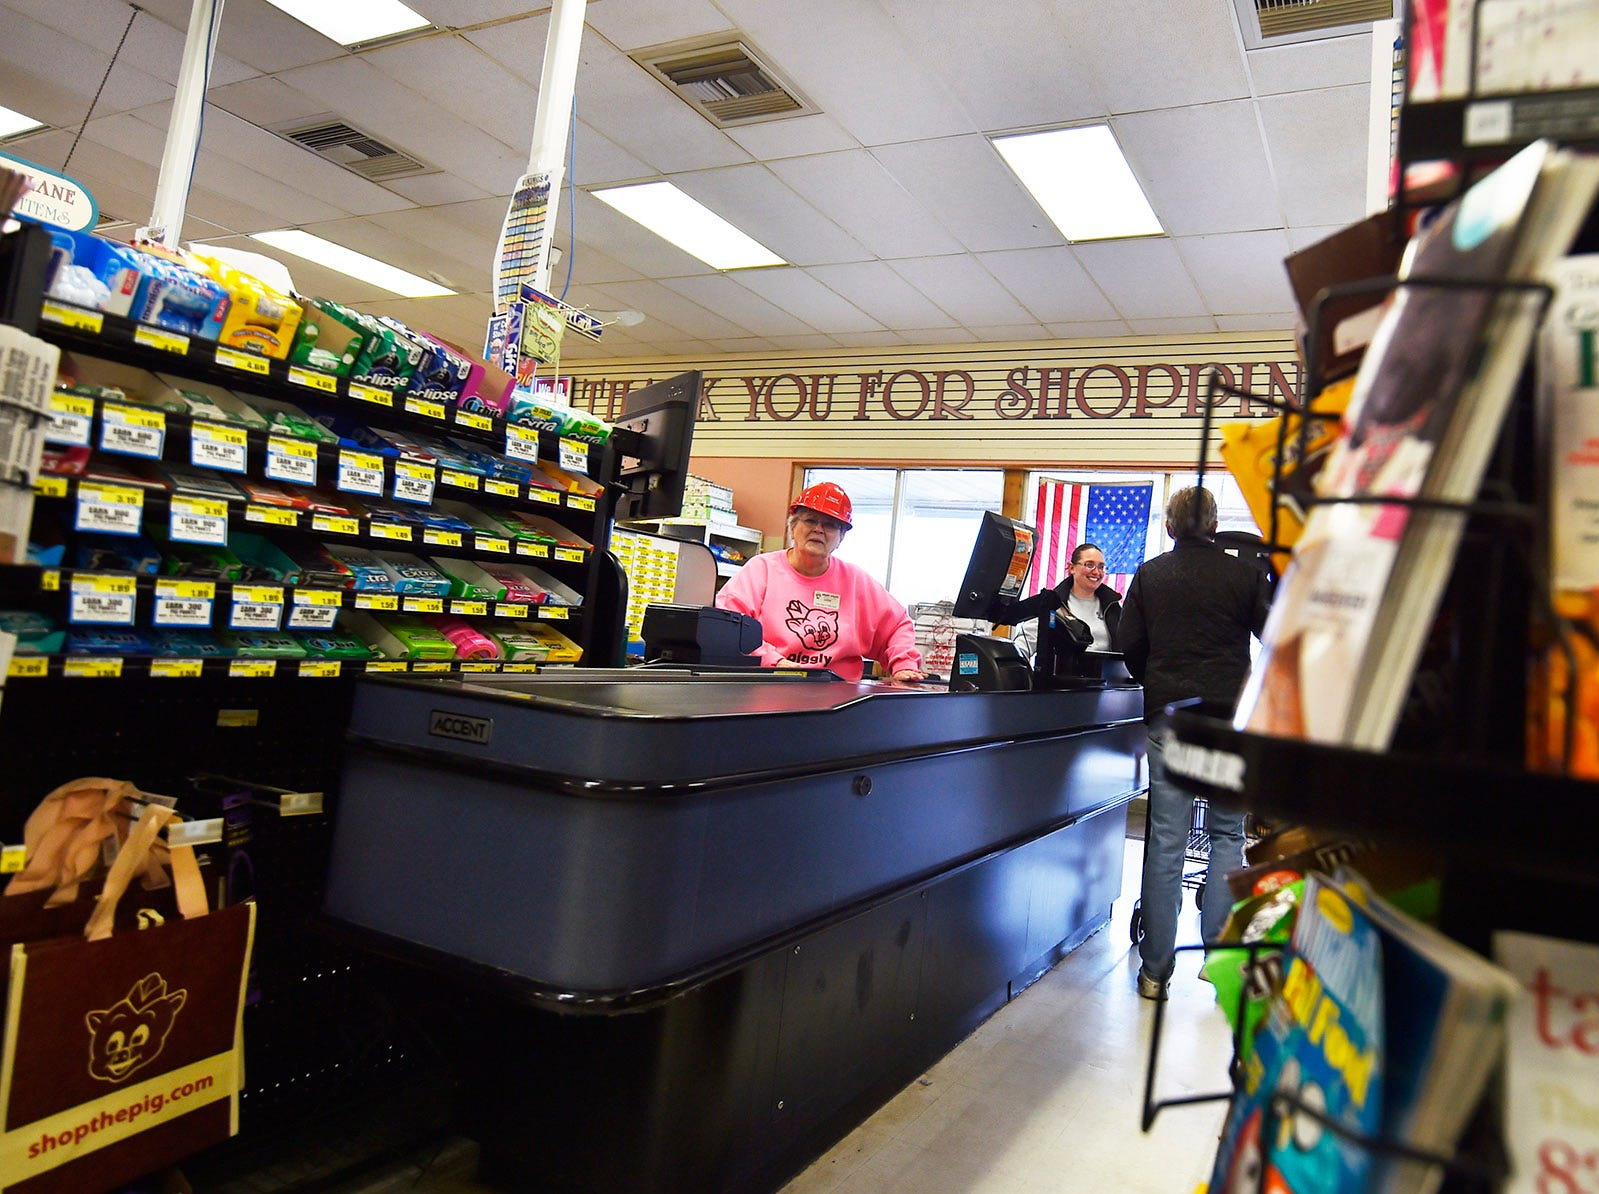 Joining the expansion atmosphere by wearing a hard hat, Lois Lindstrand greets customers at the check-out at Piggly Wiggly Sister Bay on Oct. 29, 2018. Tina M. Gohr/USA TODAY NETWORK-Wisconsin